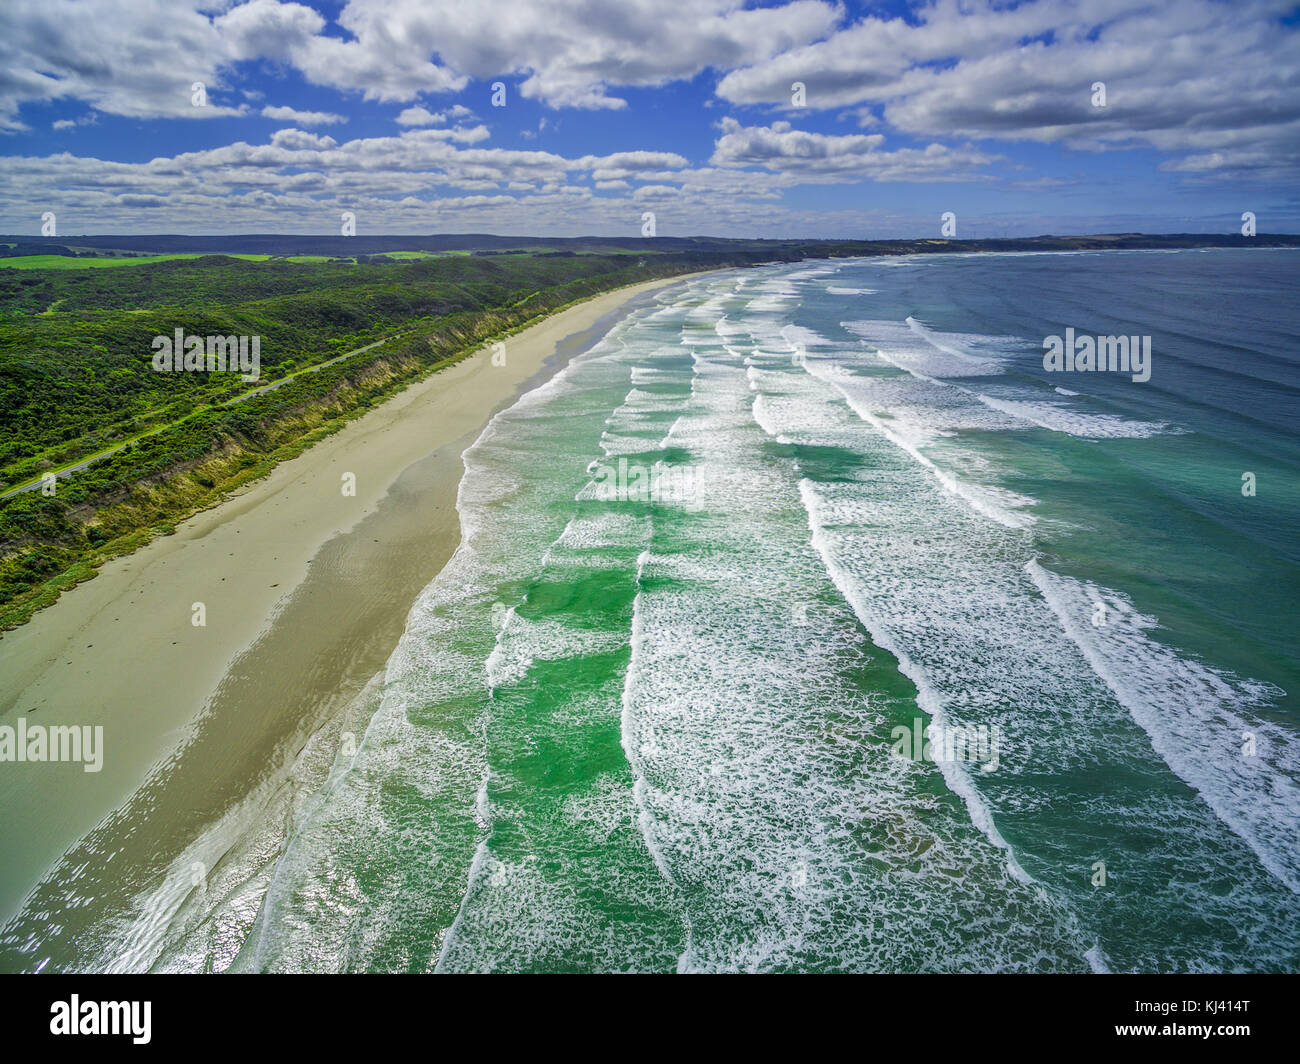 Aerial view of beautiful ocean beach in Australia - Stock Image